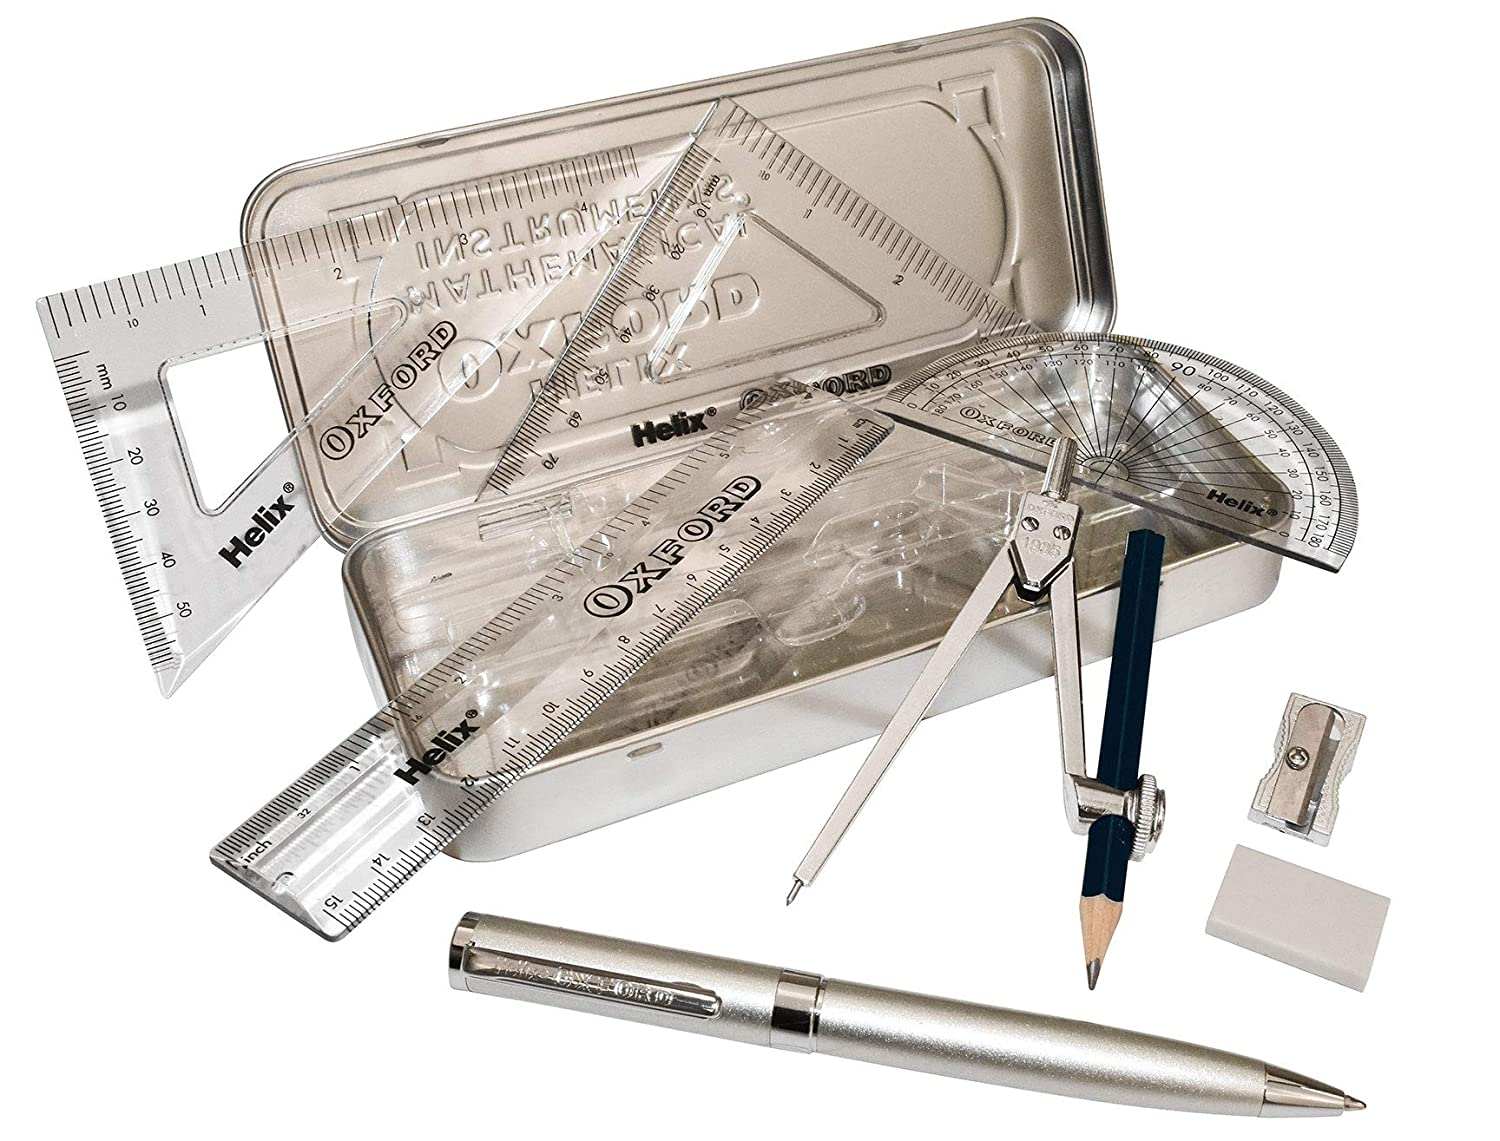 Helix Oxford Metallics Silver Maths Set with Premium Ball Point Pen